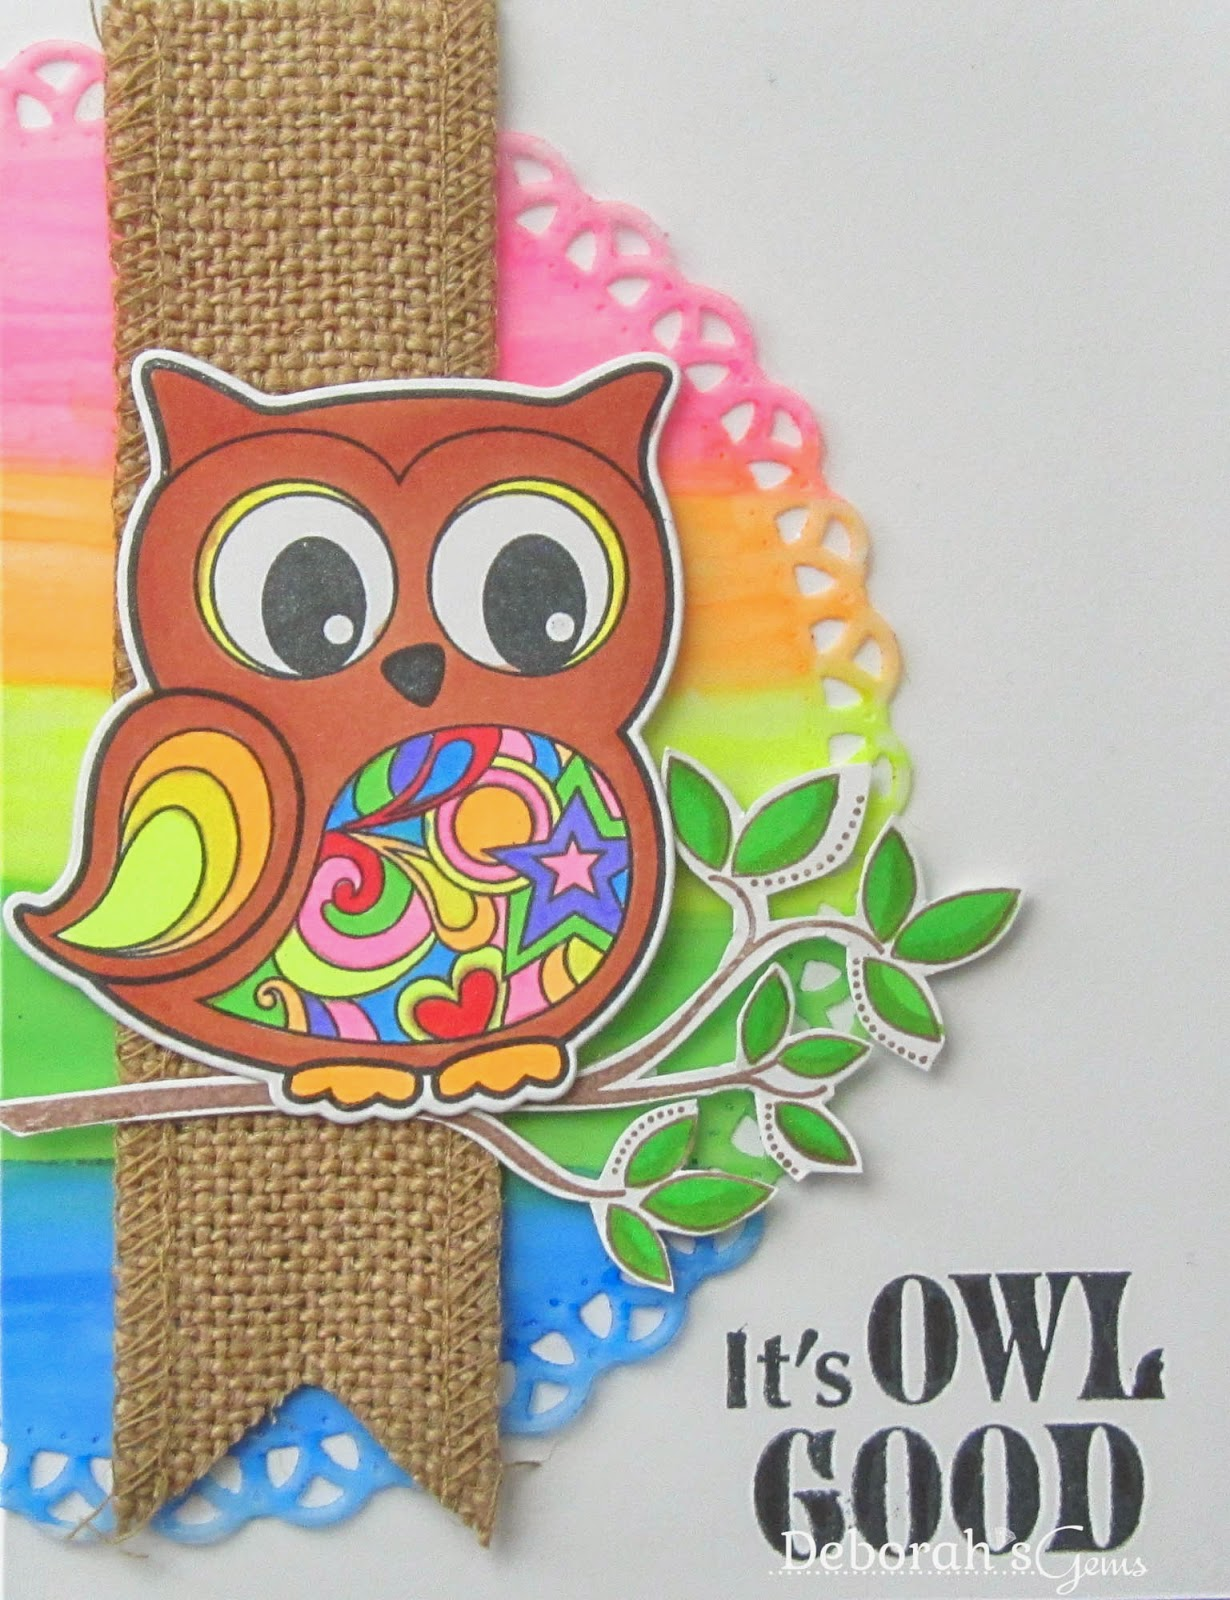 It's Owl Good - photo by Deborah Frings - Deborah's Gems